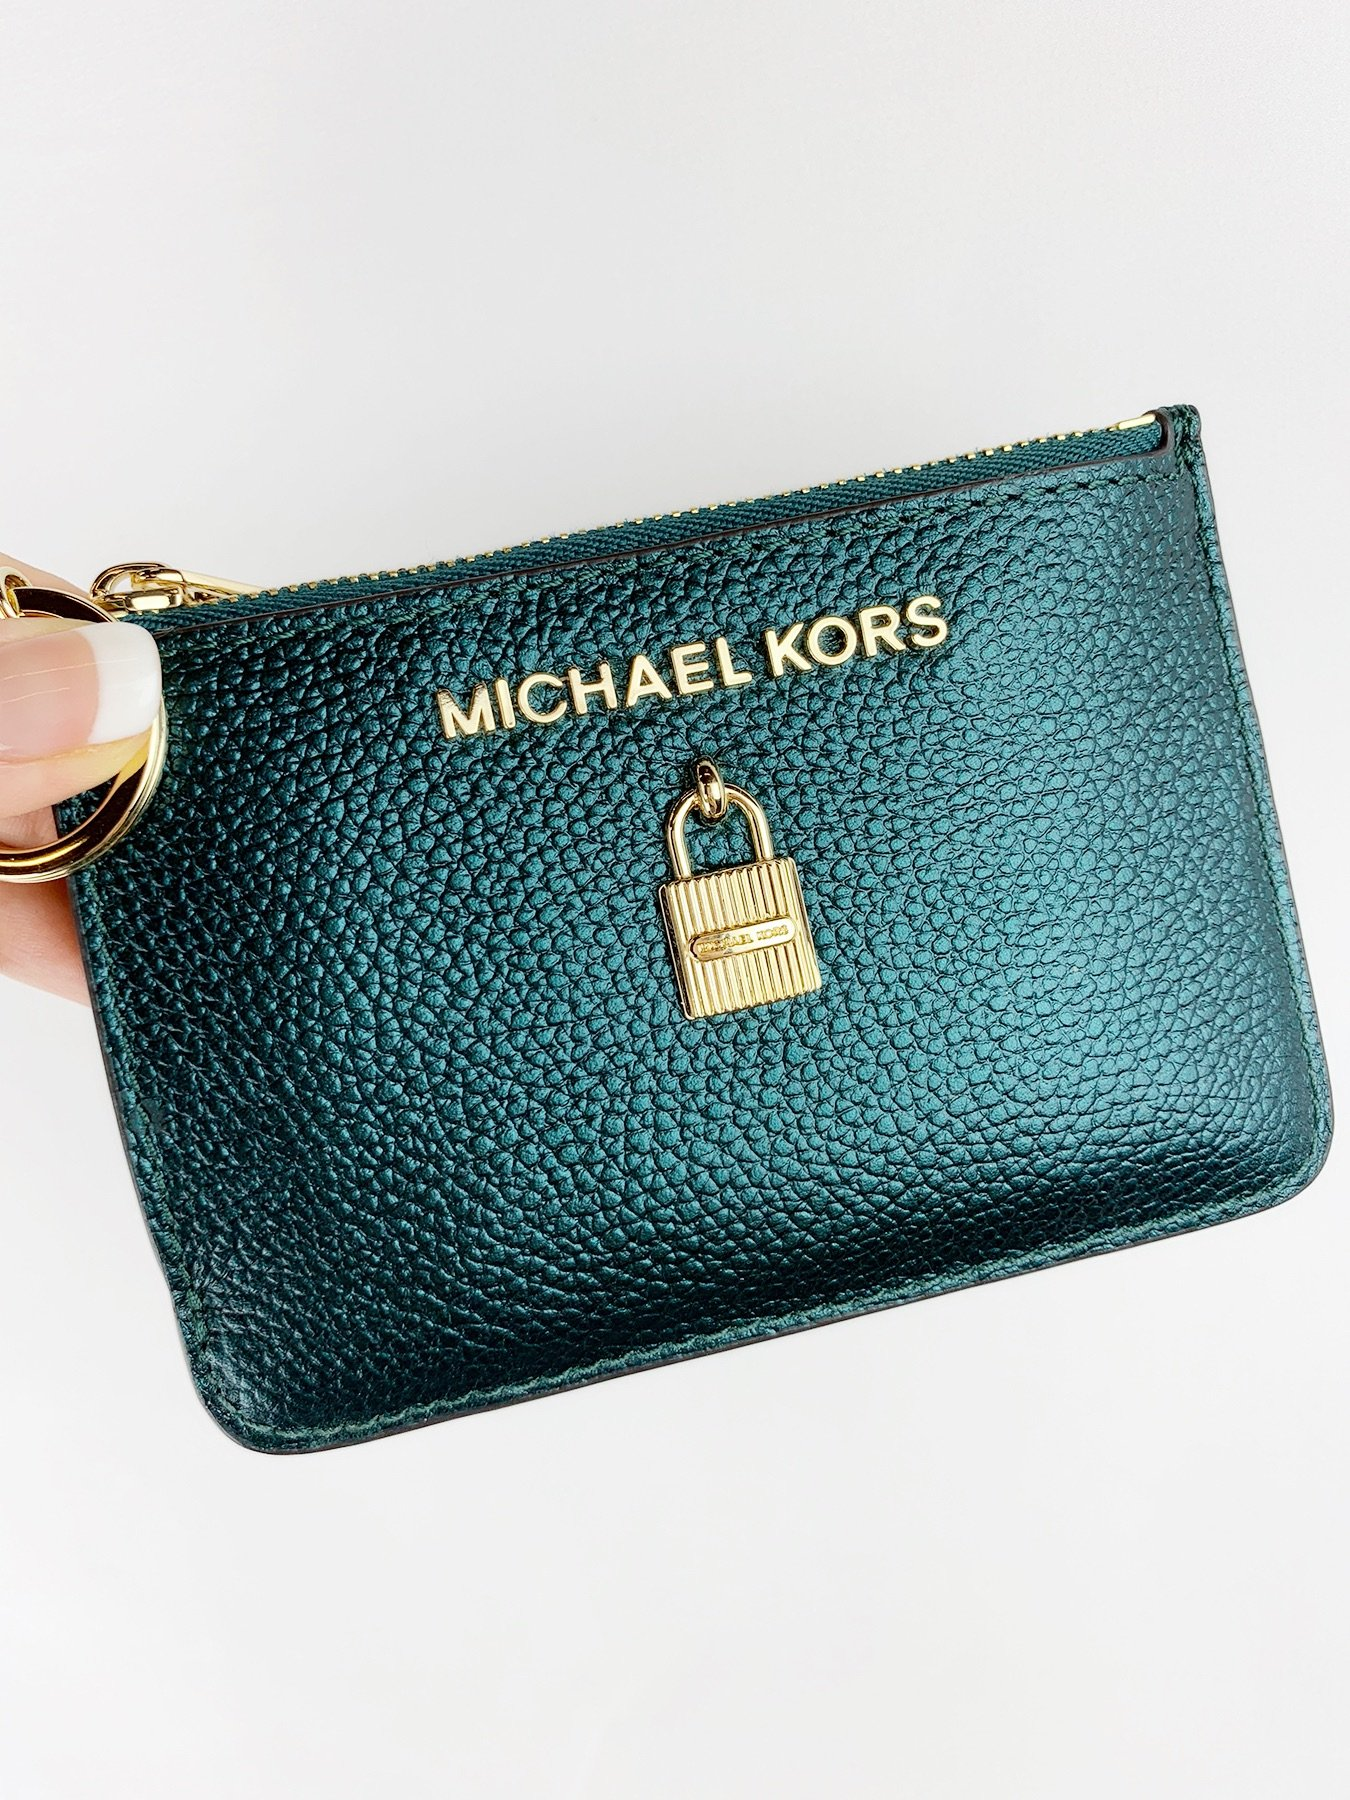 771d81dd009dea Michael Kors Jet Set Travel Zip Coin Wallet ID Keyring Card Holder ...